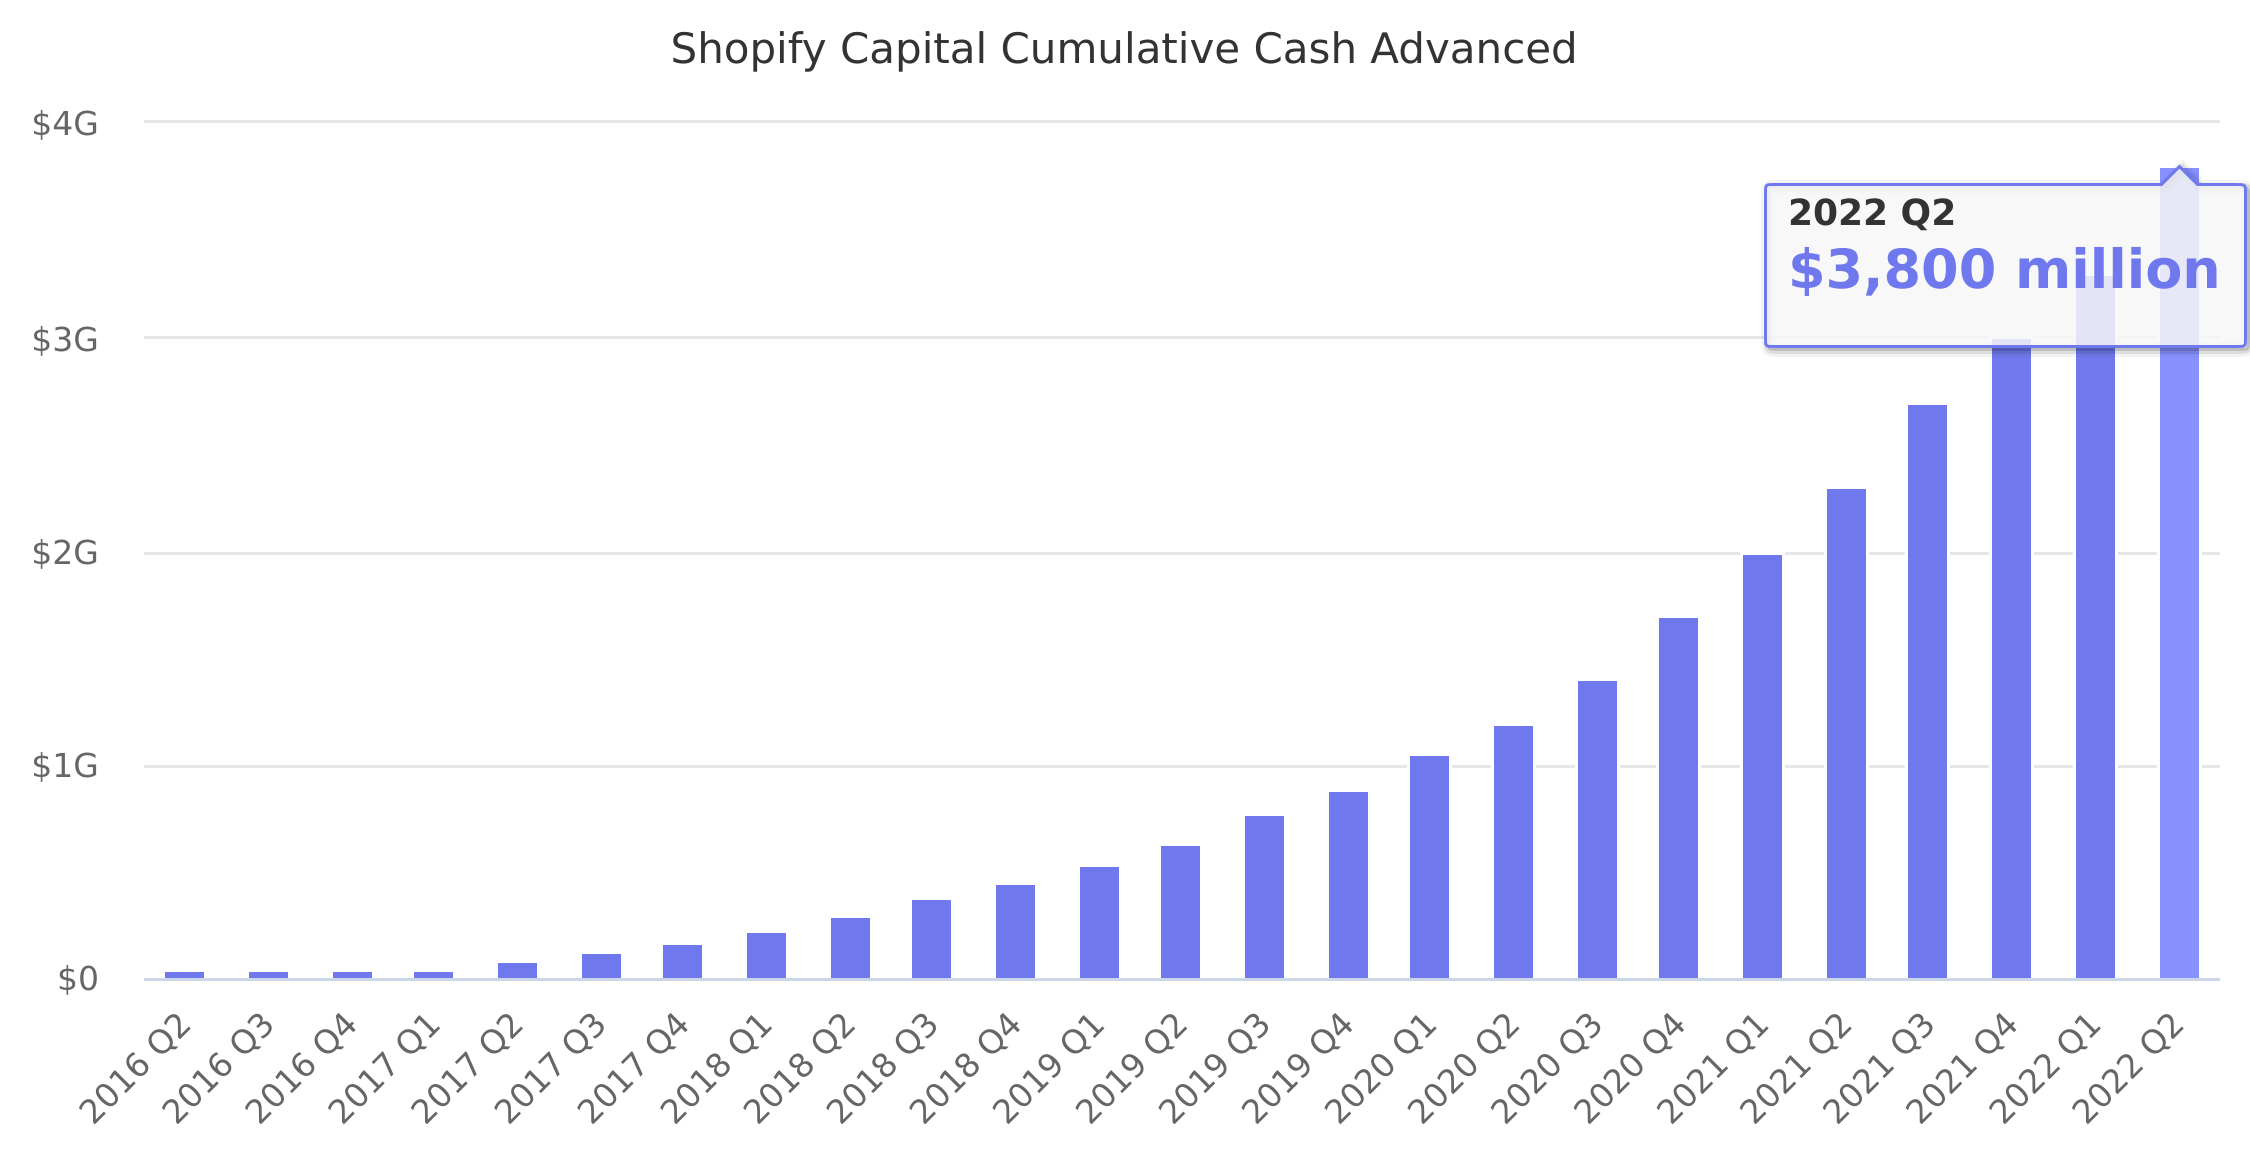 Shopify Capital Cumulative Cash Advanced